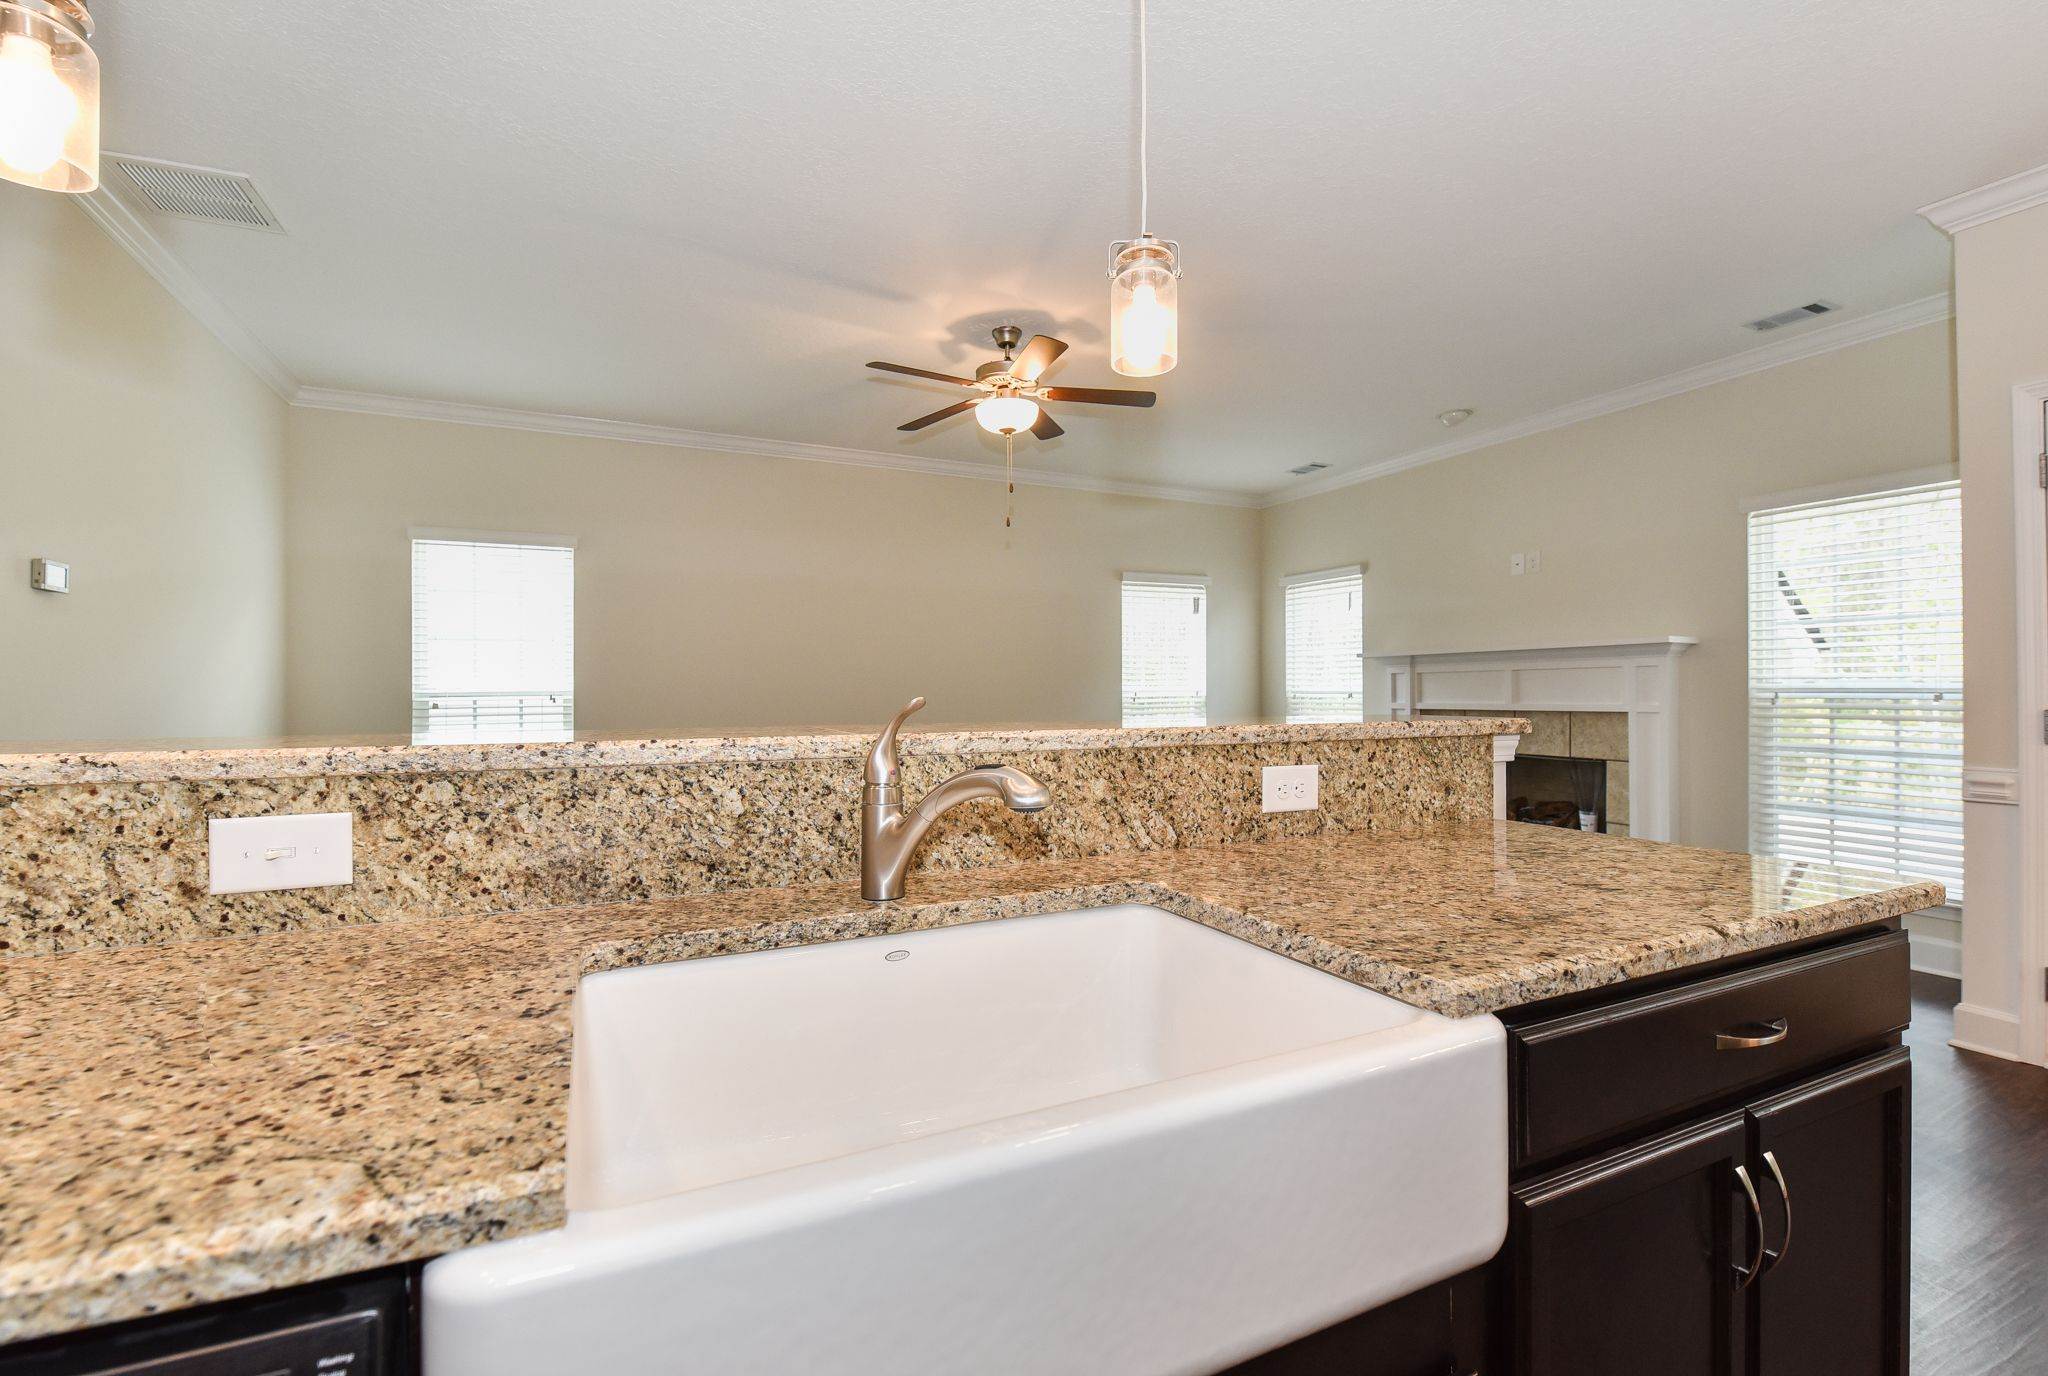 Kitchen featured in the Edisto By Ernest Homes in Savannah, GA